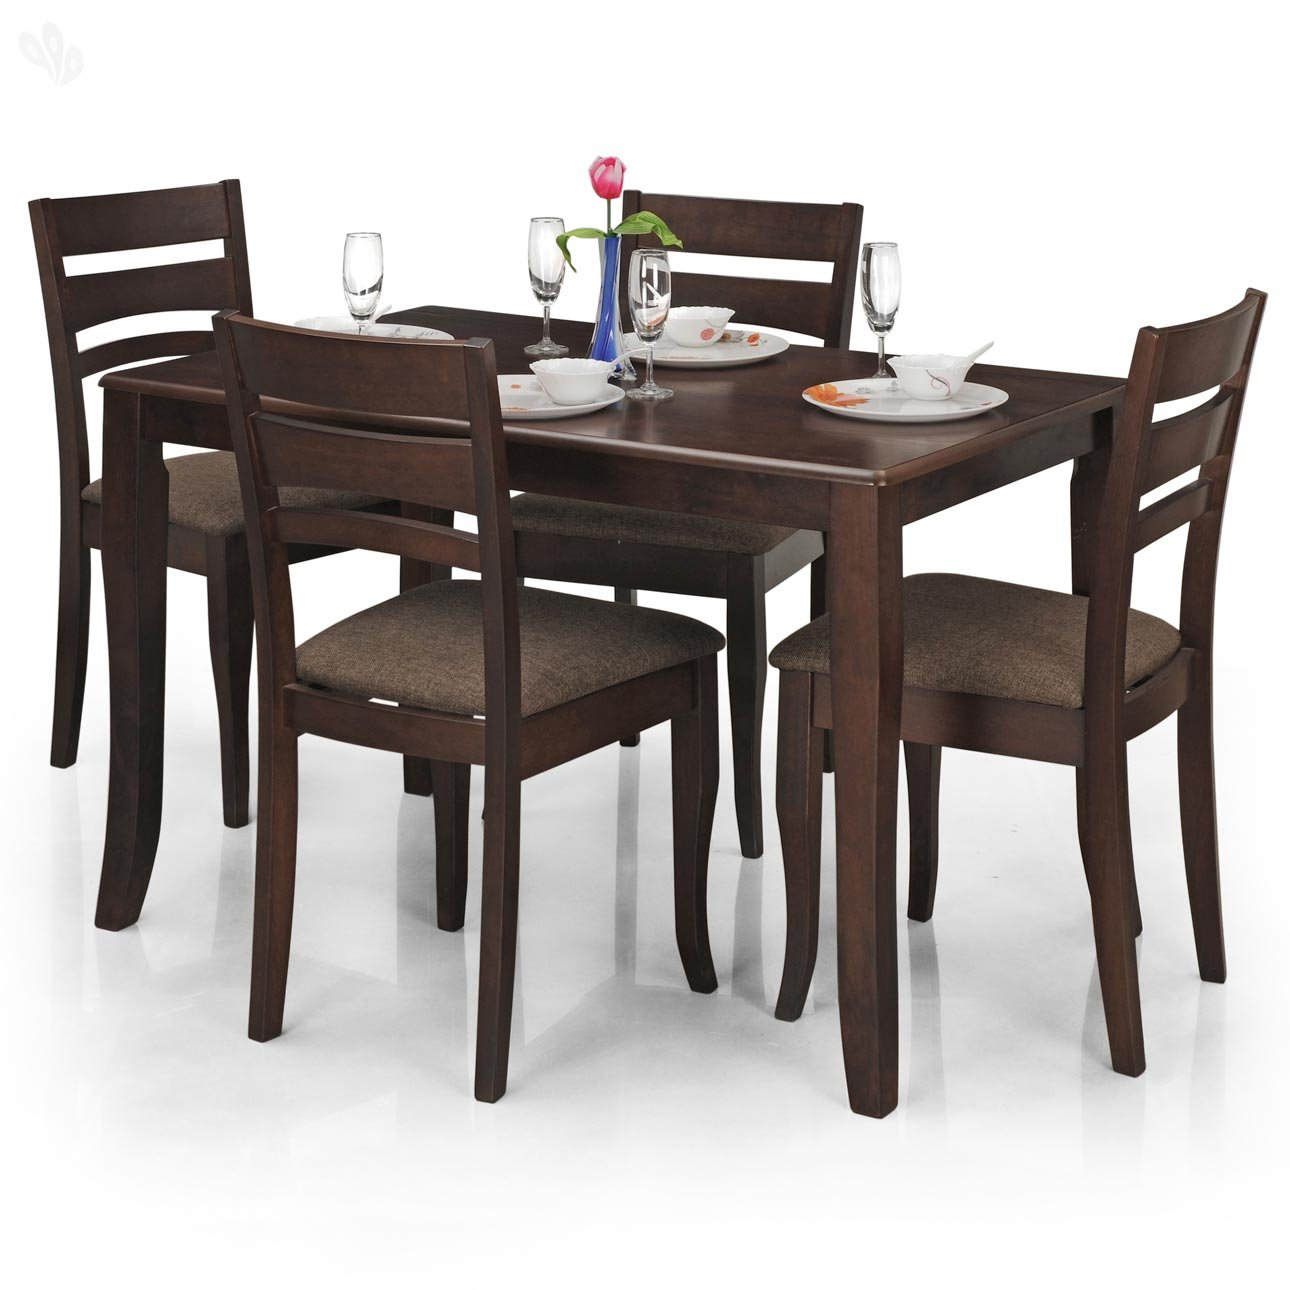 tables and chairs price list royal oak victor four seater dining